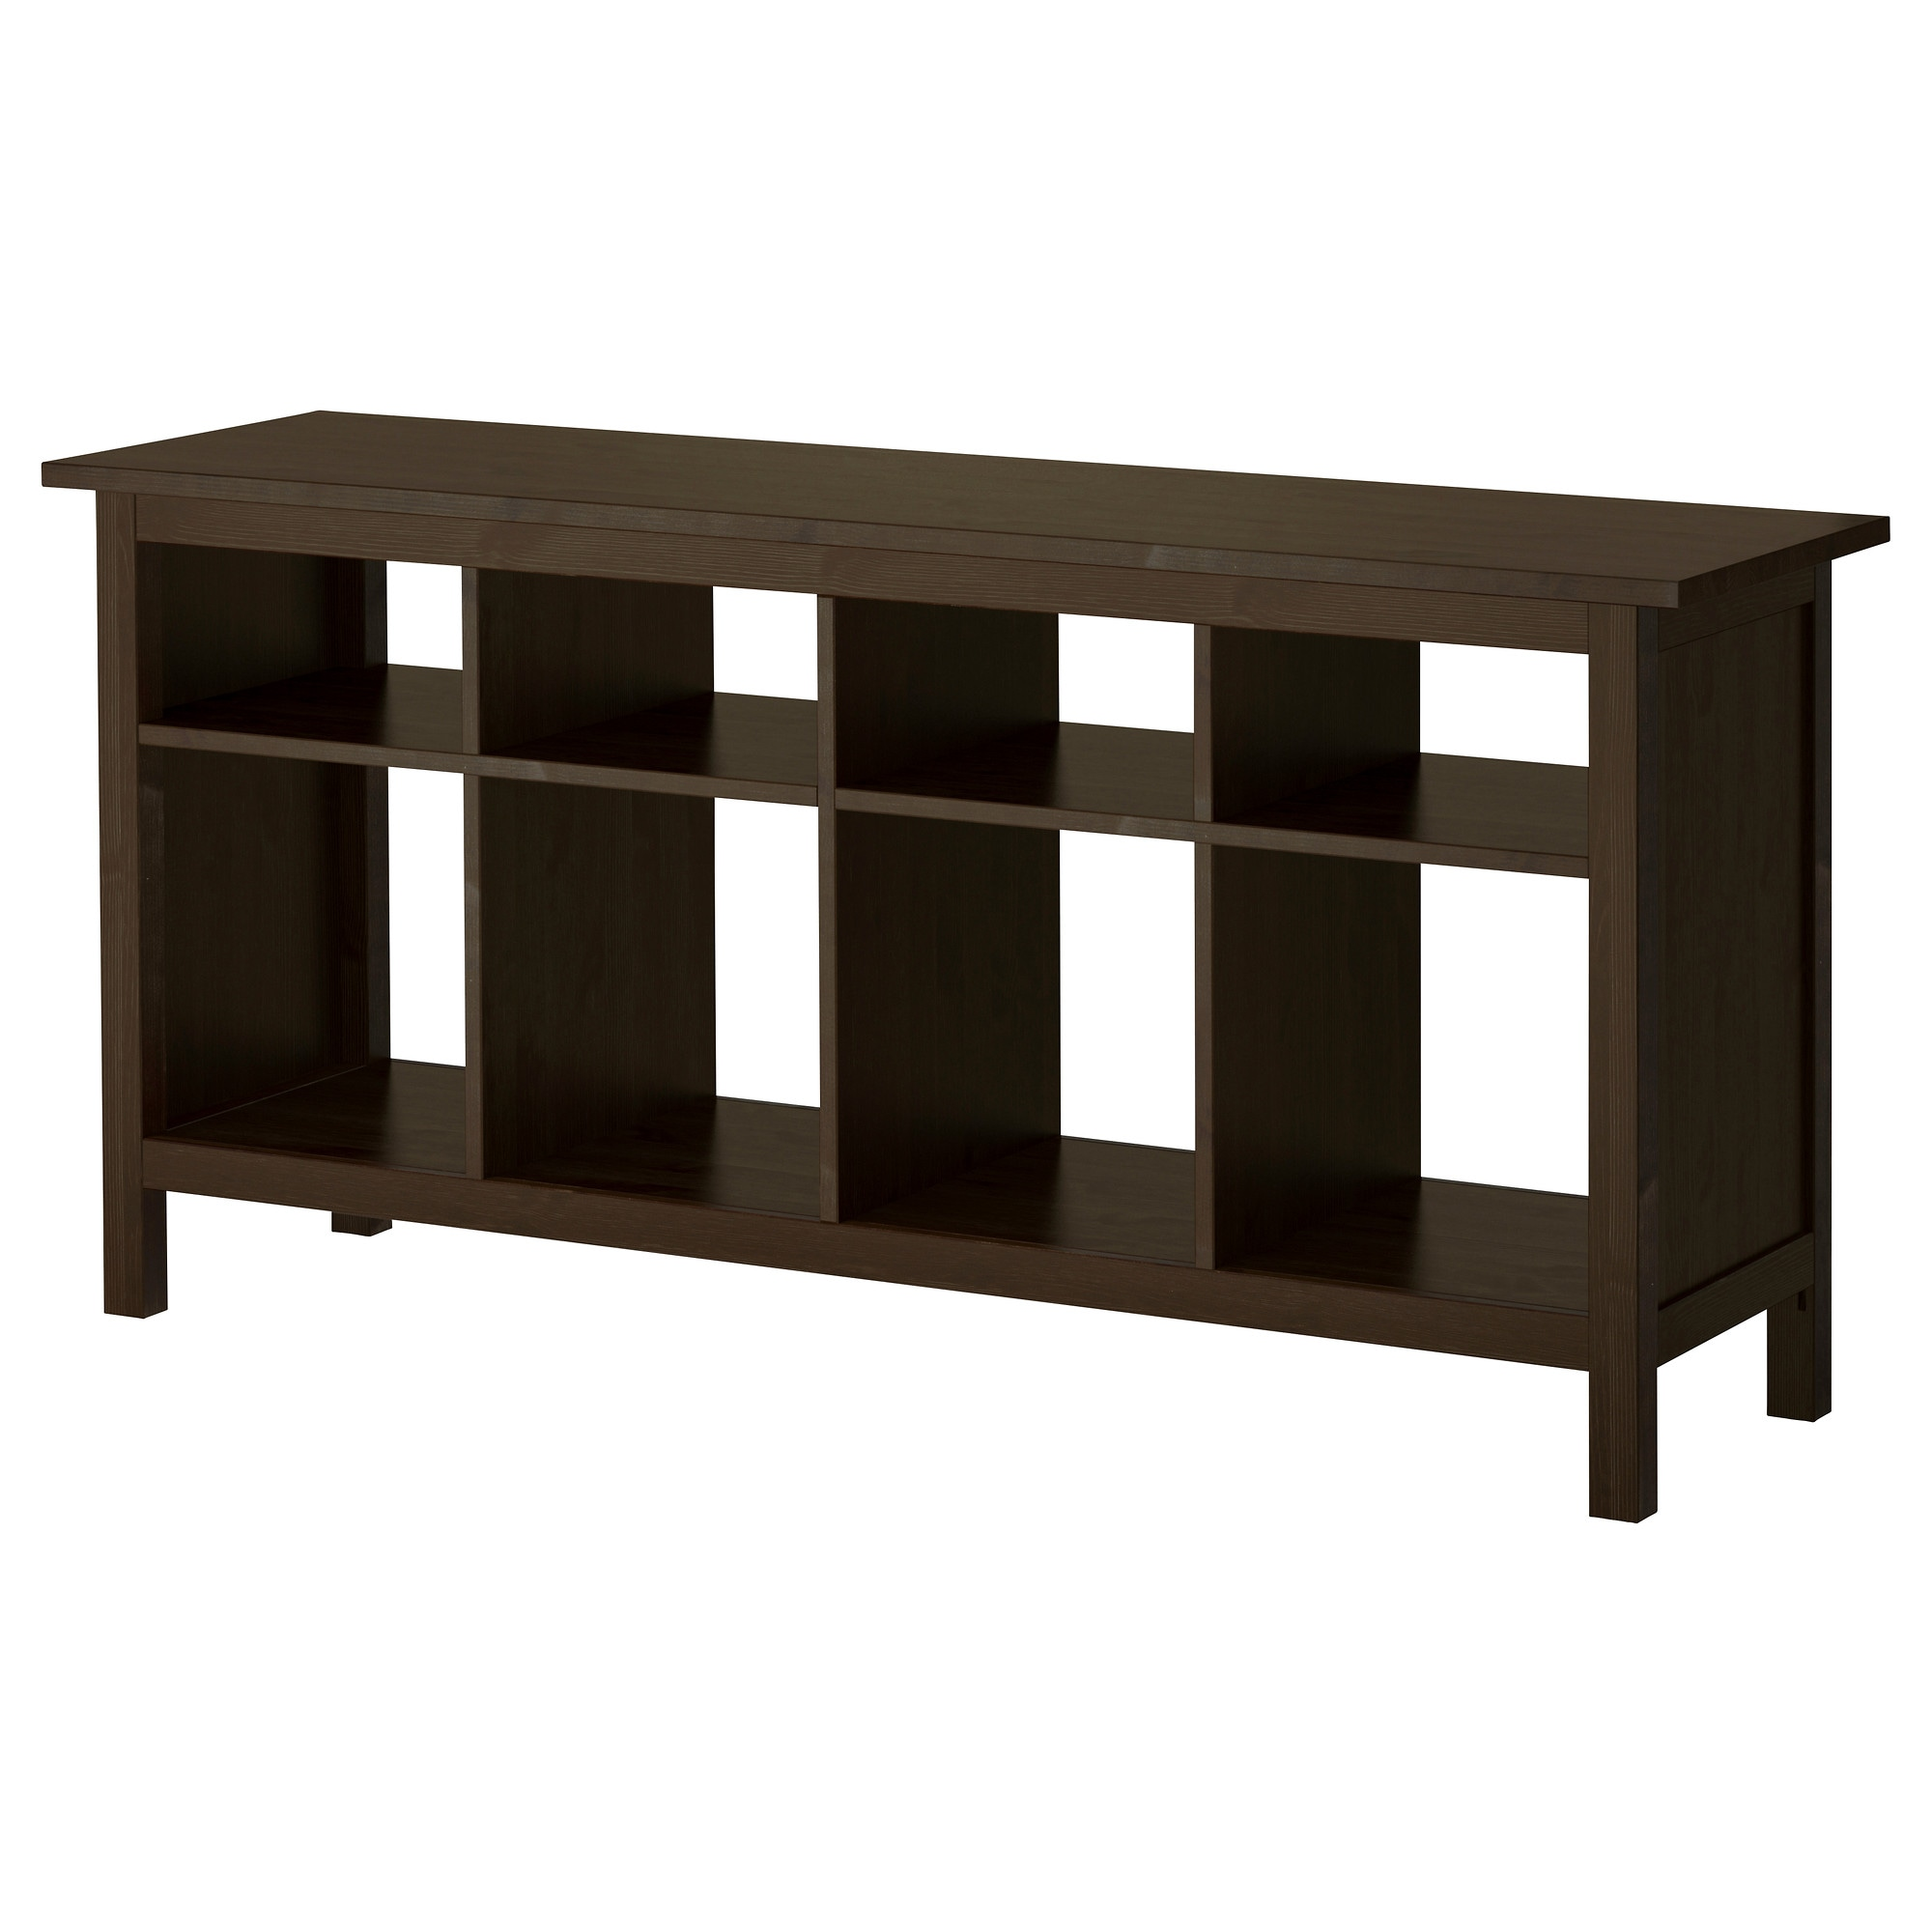 Black console table with storage - Black Console Table With Storage